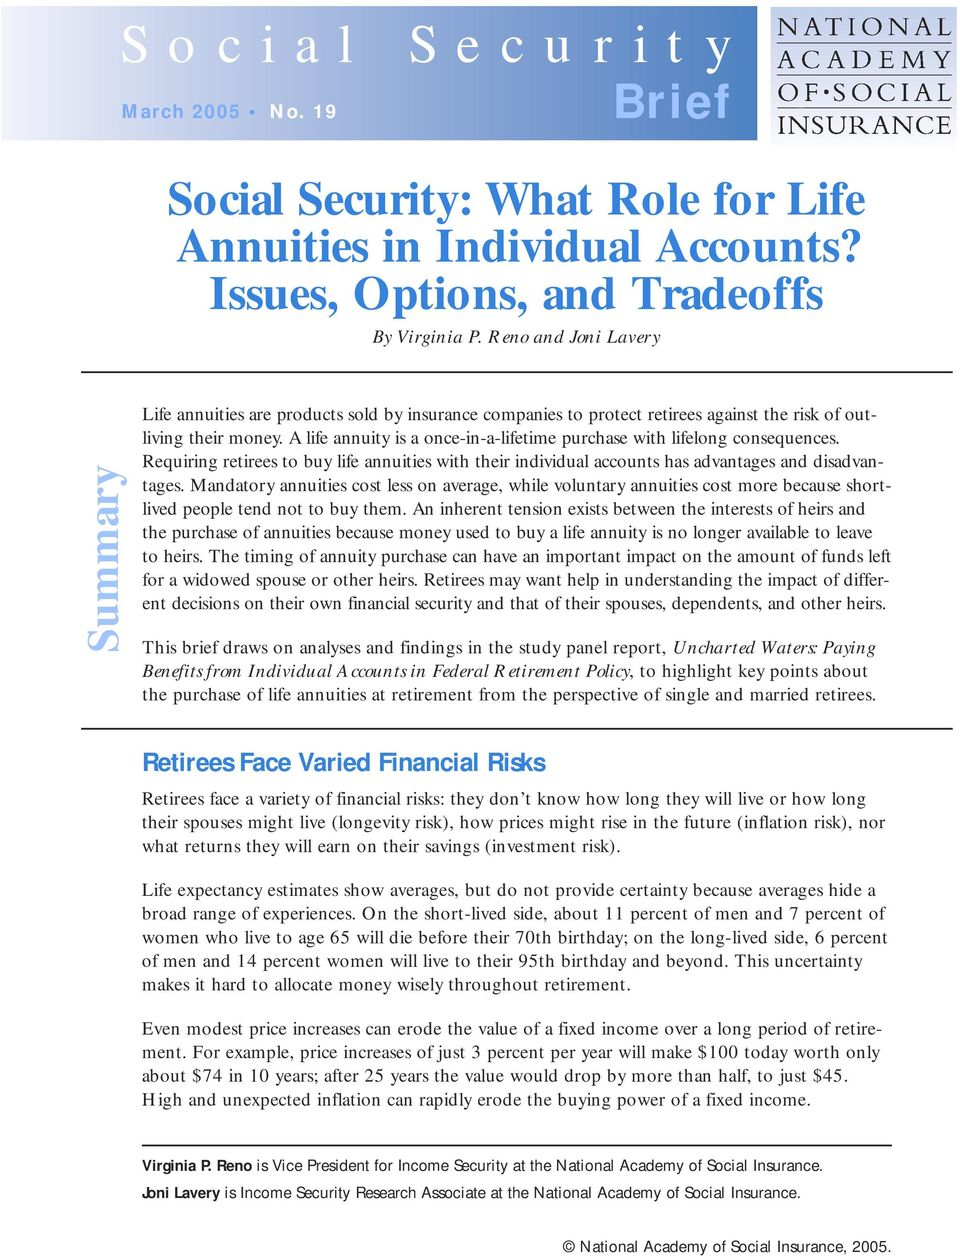 A life annuity is a once-in-a-lifetime purchase with lifelong consequences. Requiring retirees to buy life annuities with their individual accounts has advantages and disadvantages.